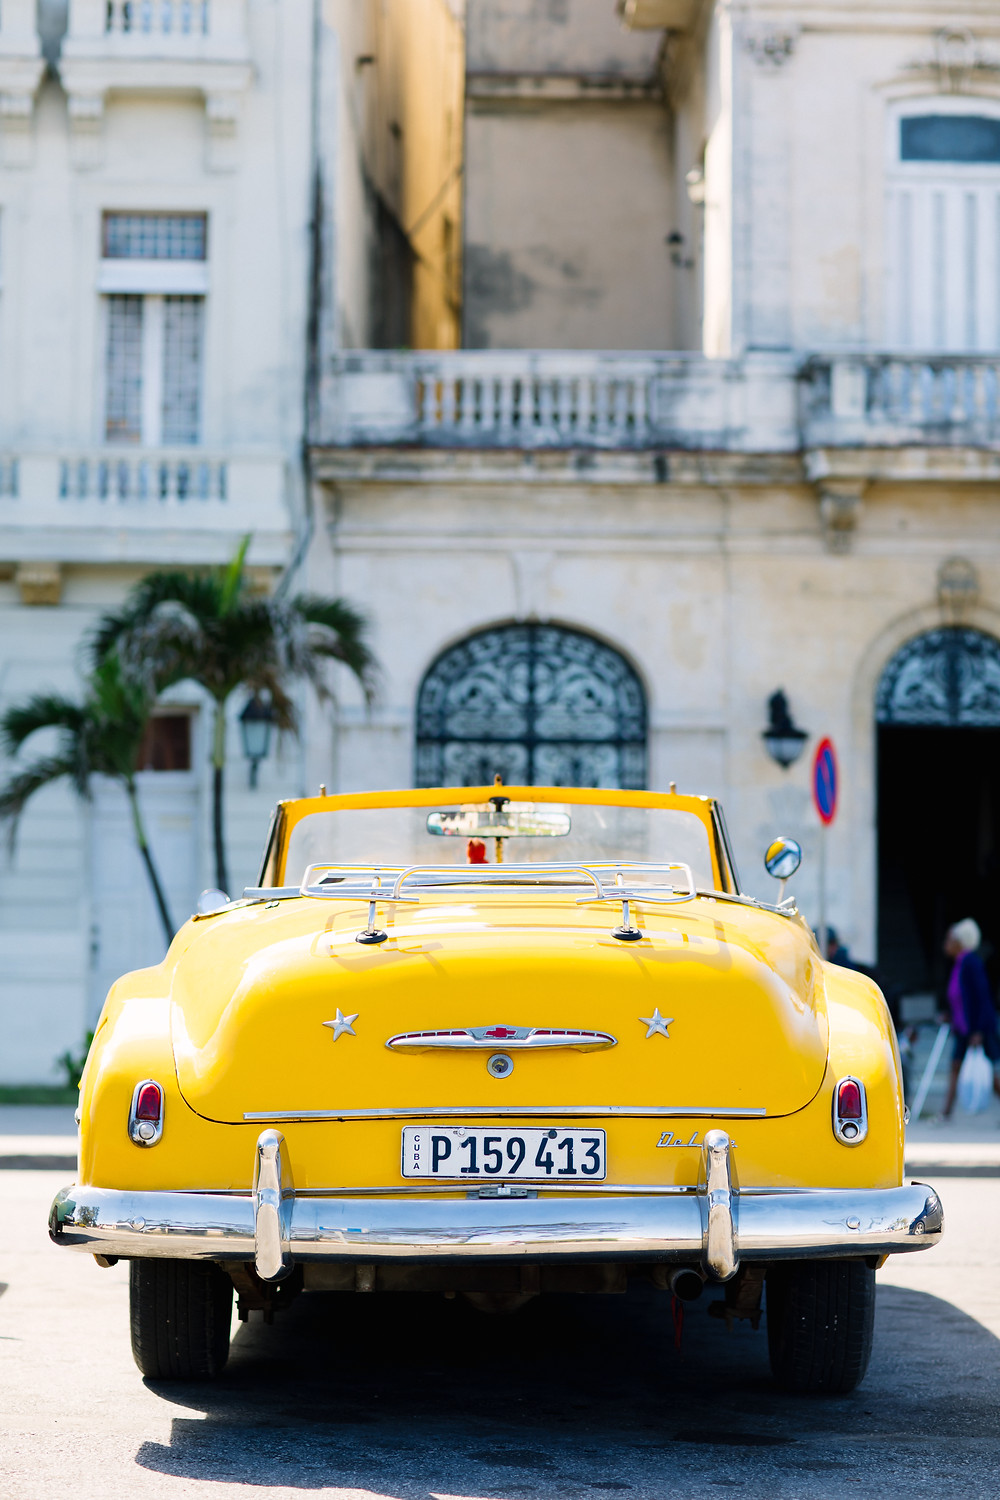 Top cultural travel locations - Drink Mojitos at sunset in Havana - private homes and villas